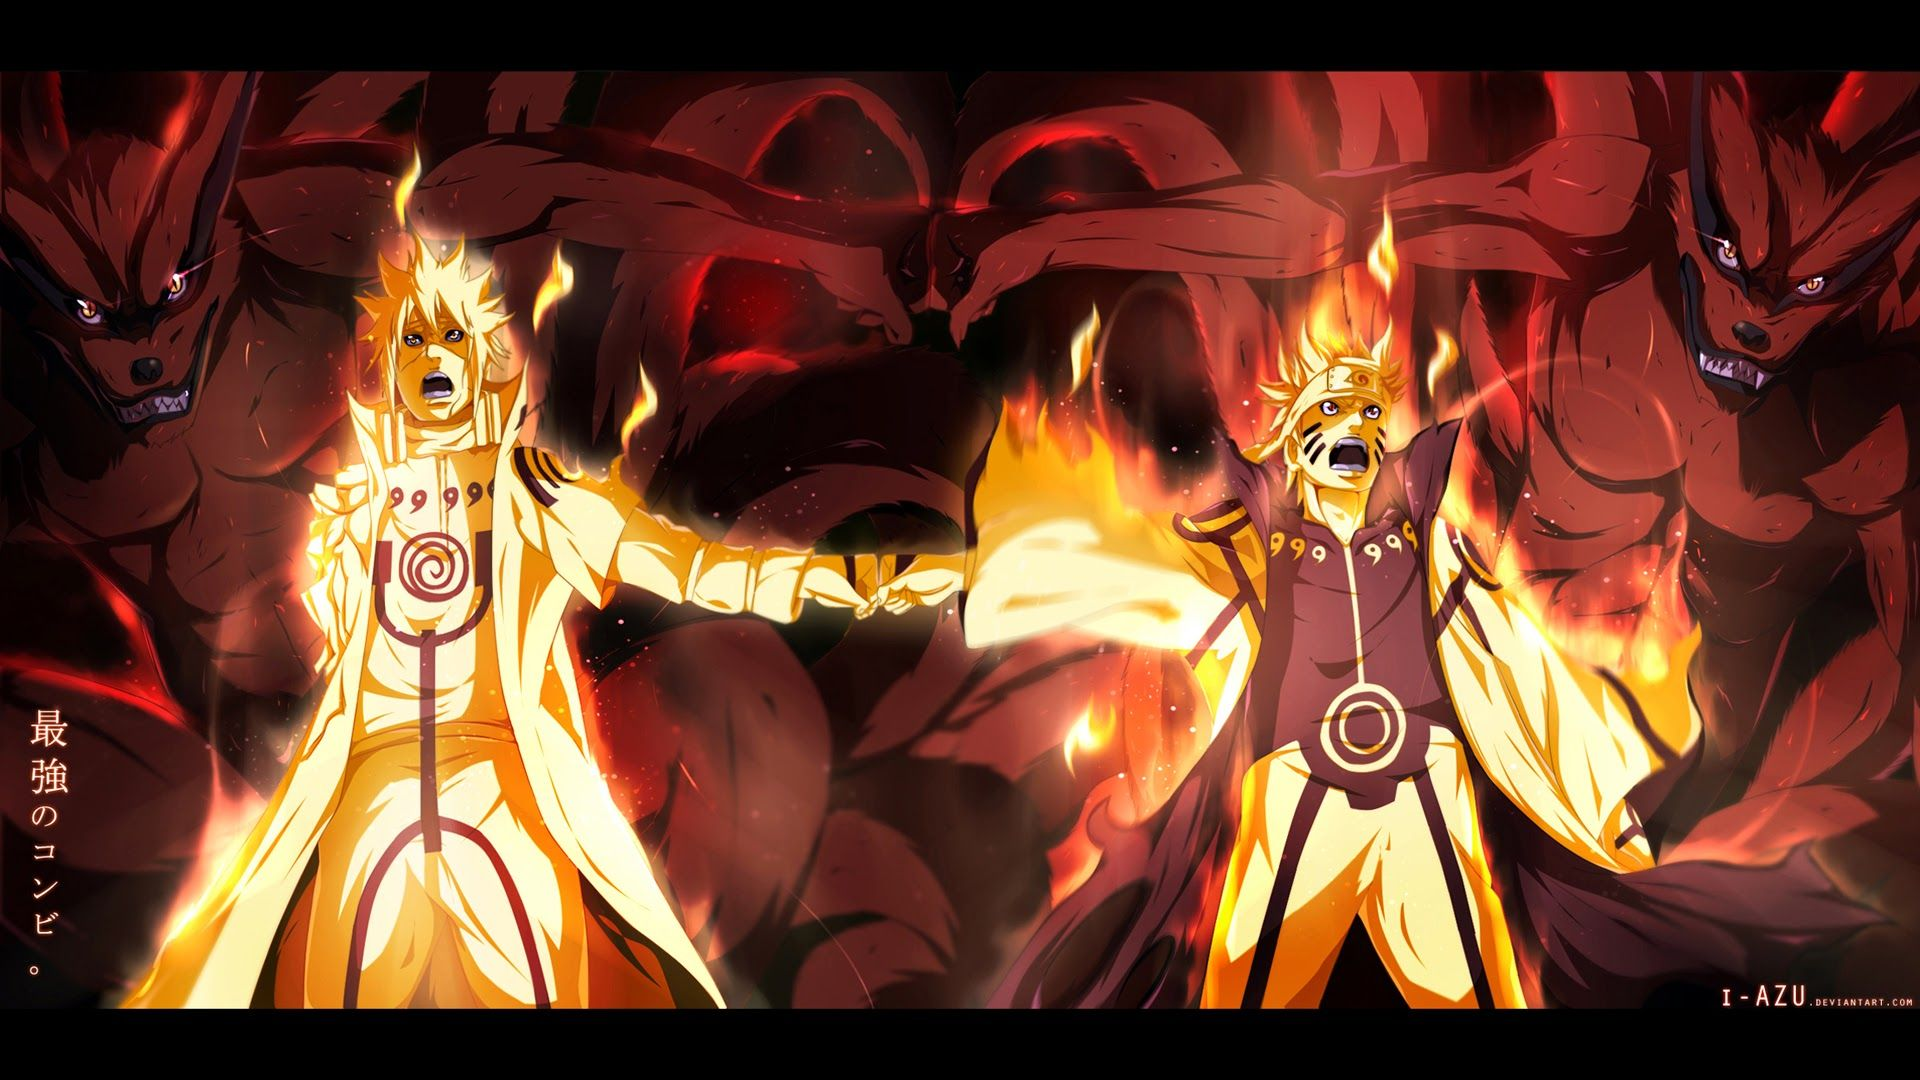 Wallpaper Collection 37 Best Free Hd Anime Wallpaper 1920x1080 Background To Download Pc In 2020 Wallpaper Naruto Shippuden Hd Anime Wallpapers Naruto Wallpaper